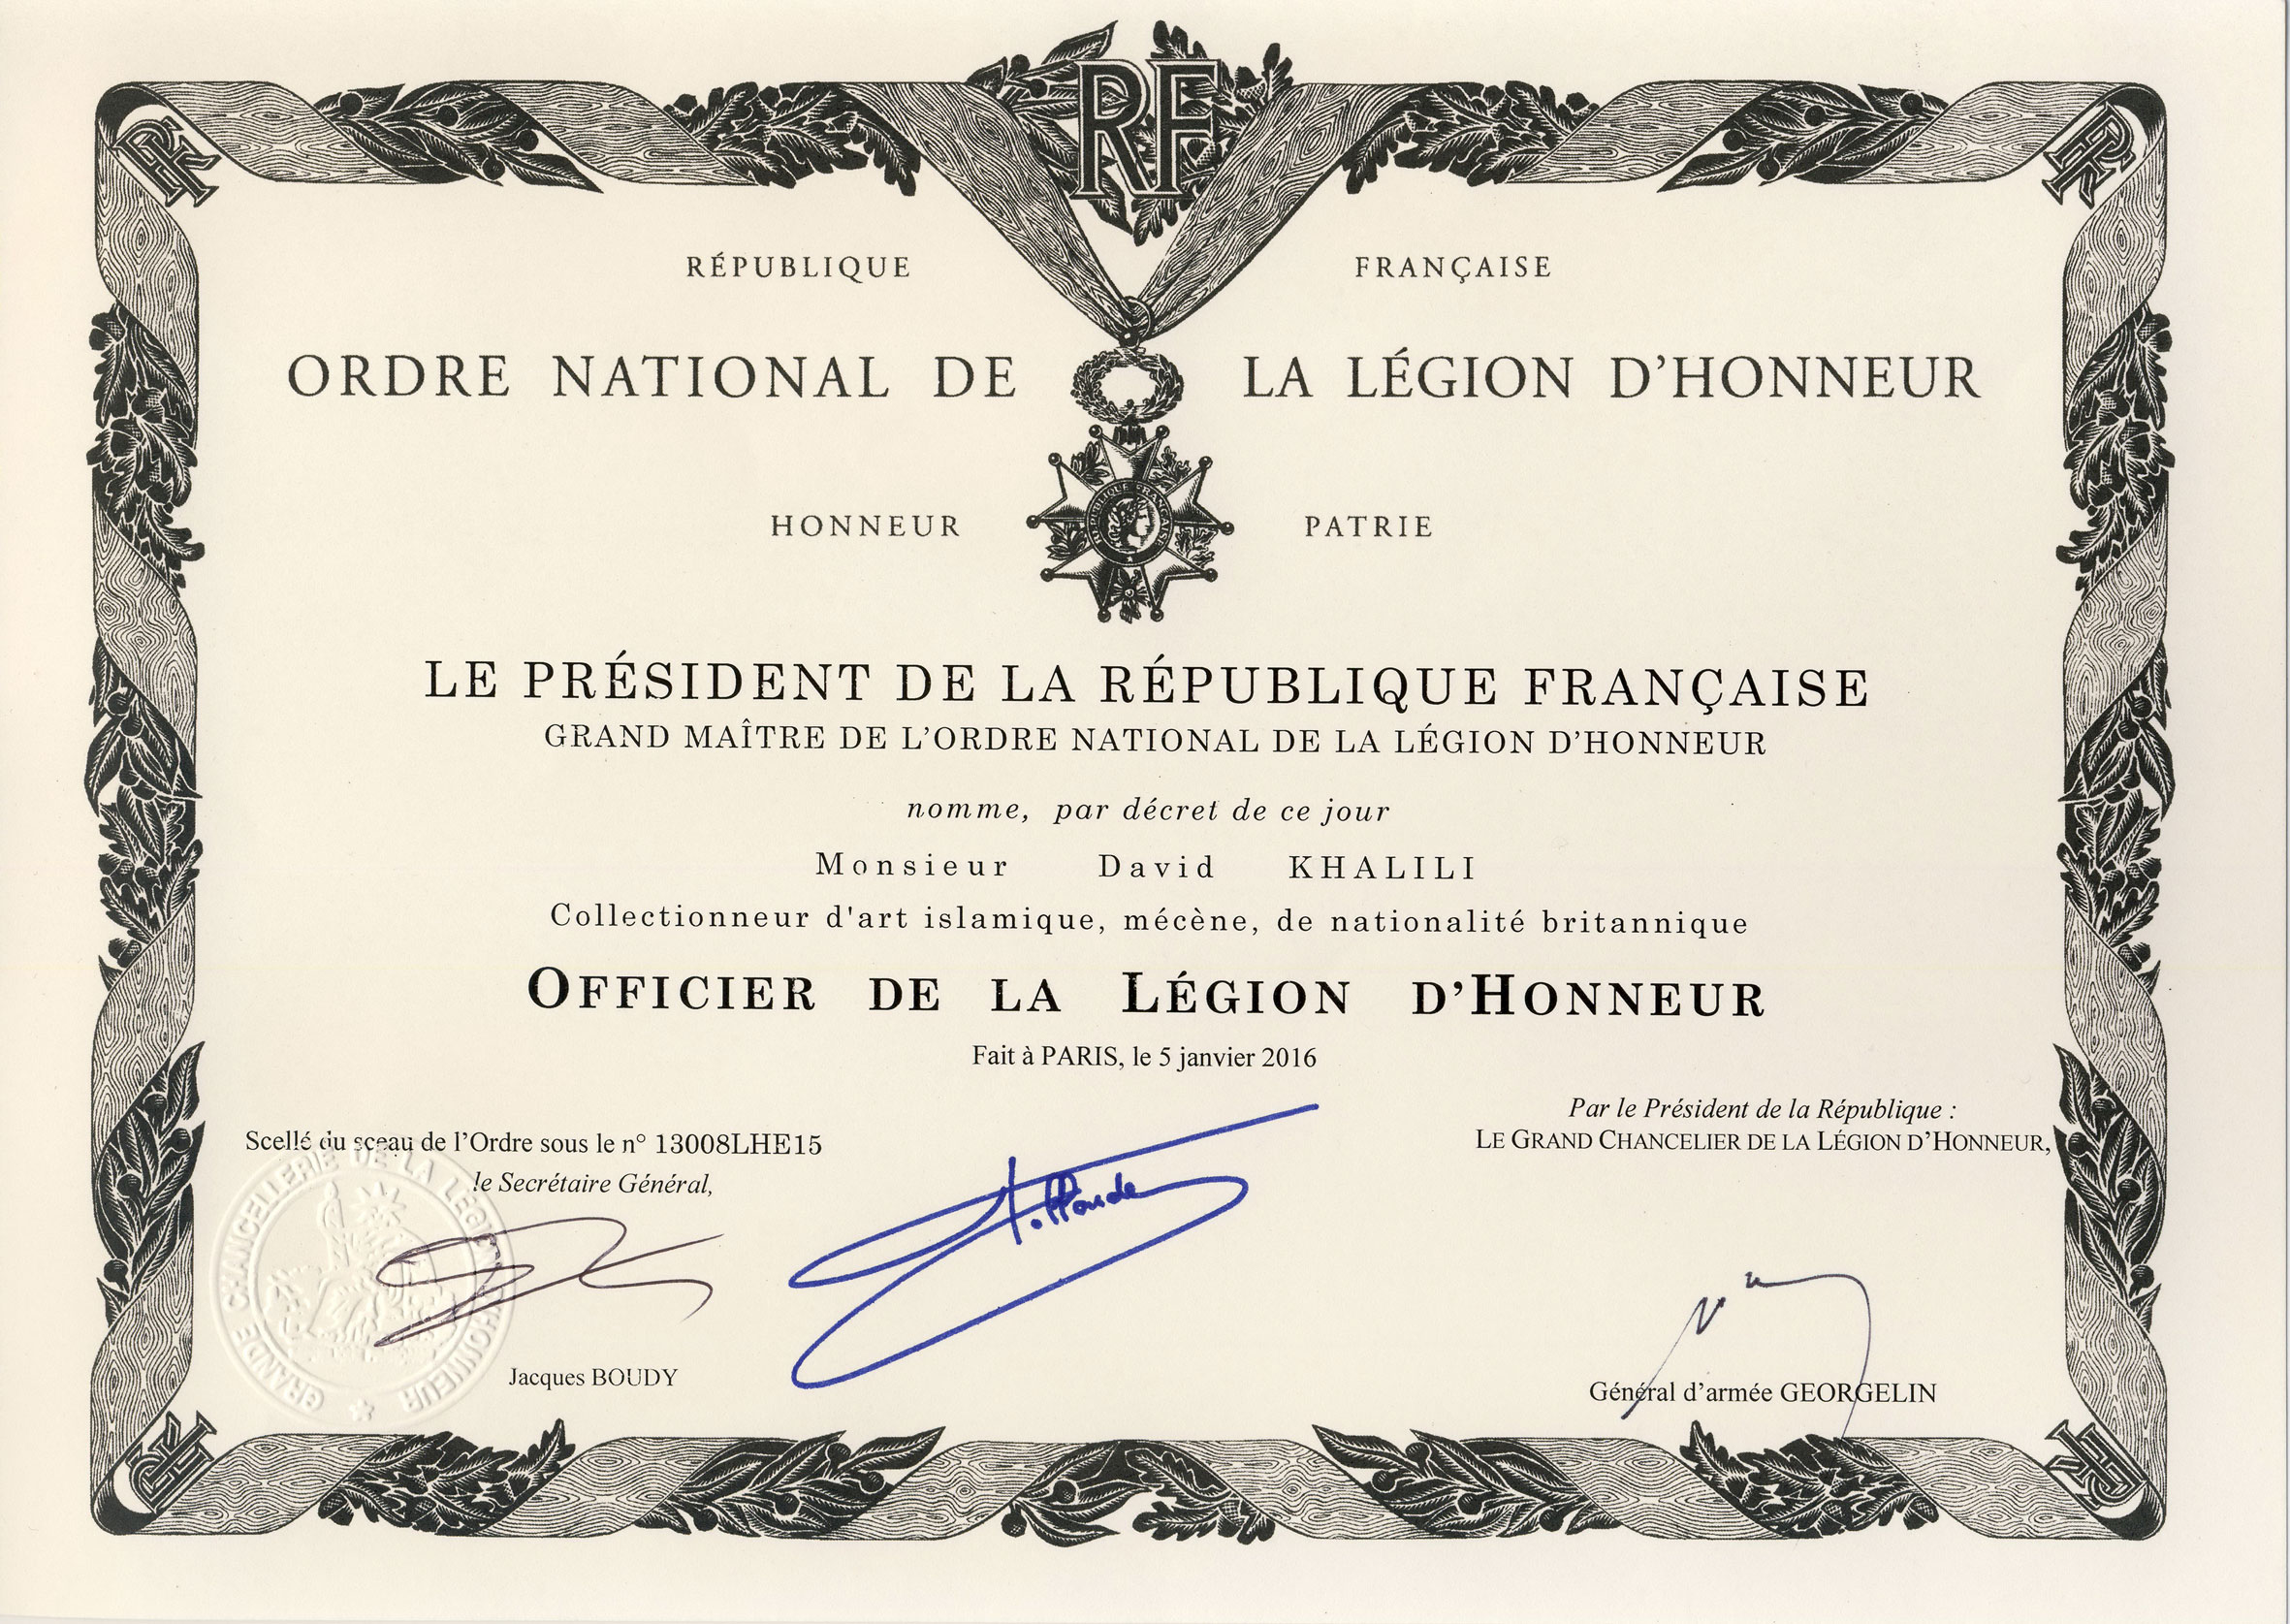 Officier in the Ordre national de la Légion d'Honneur